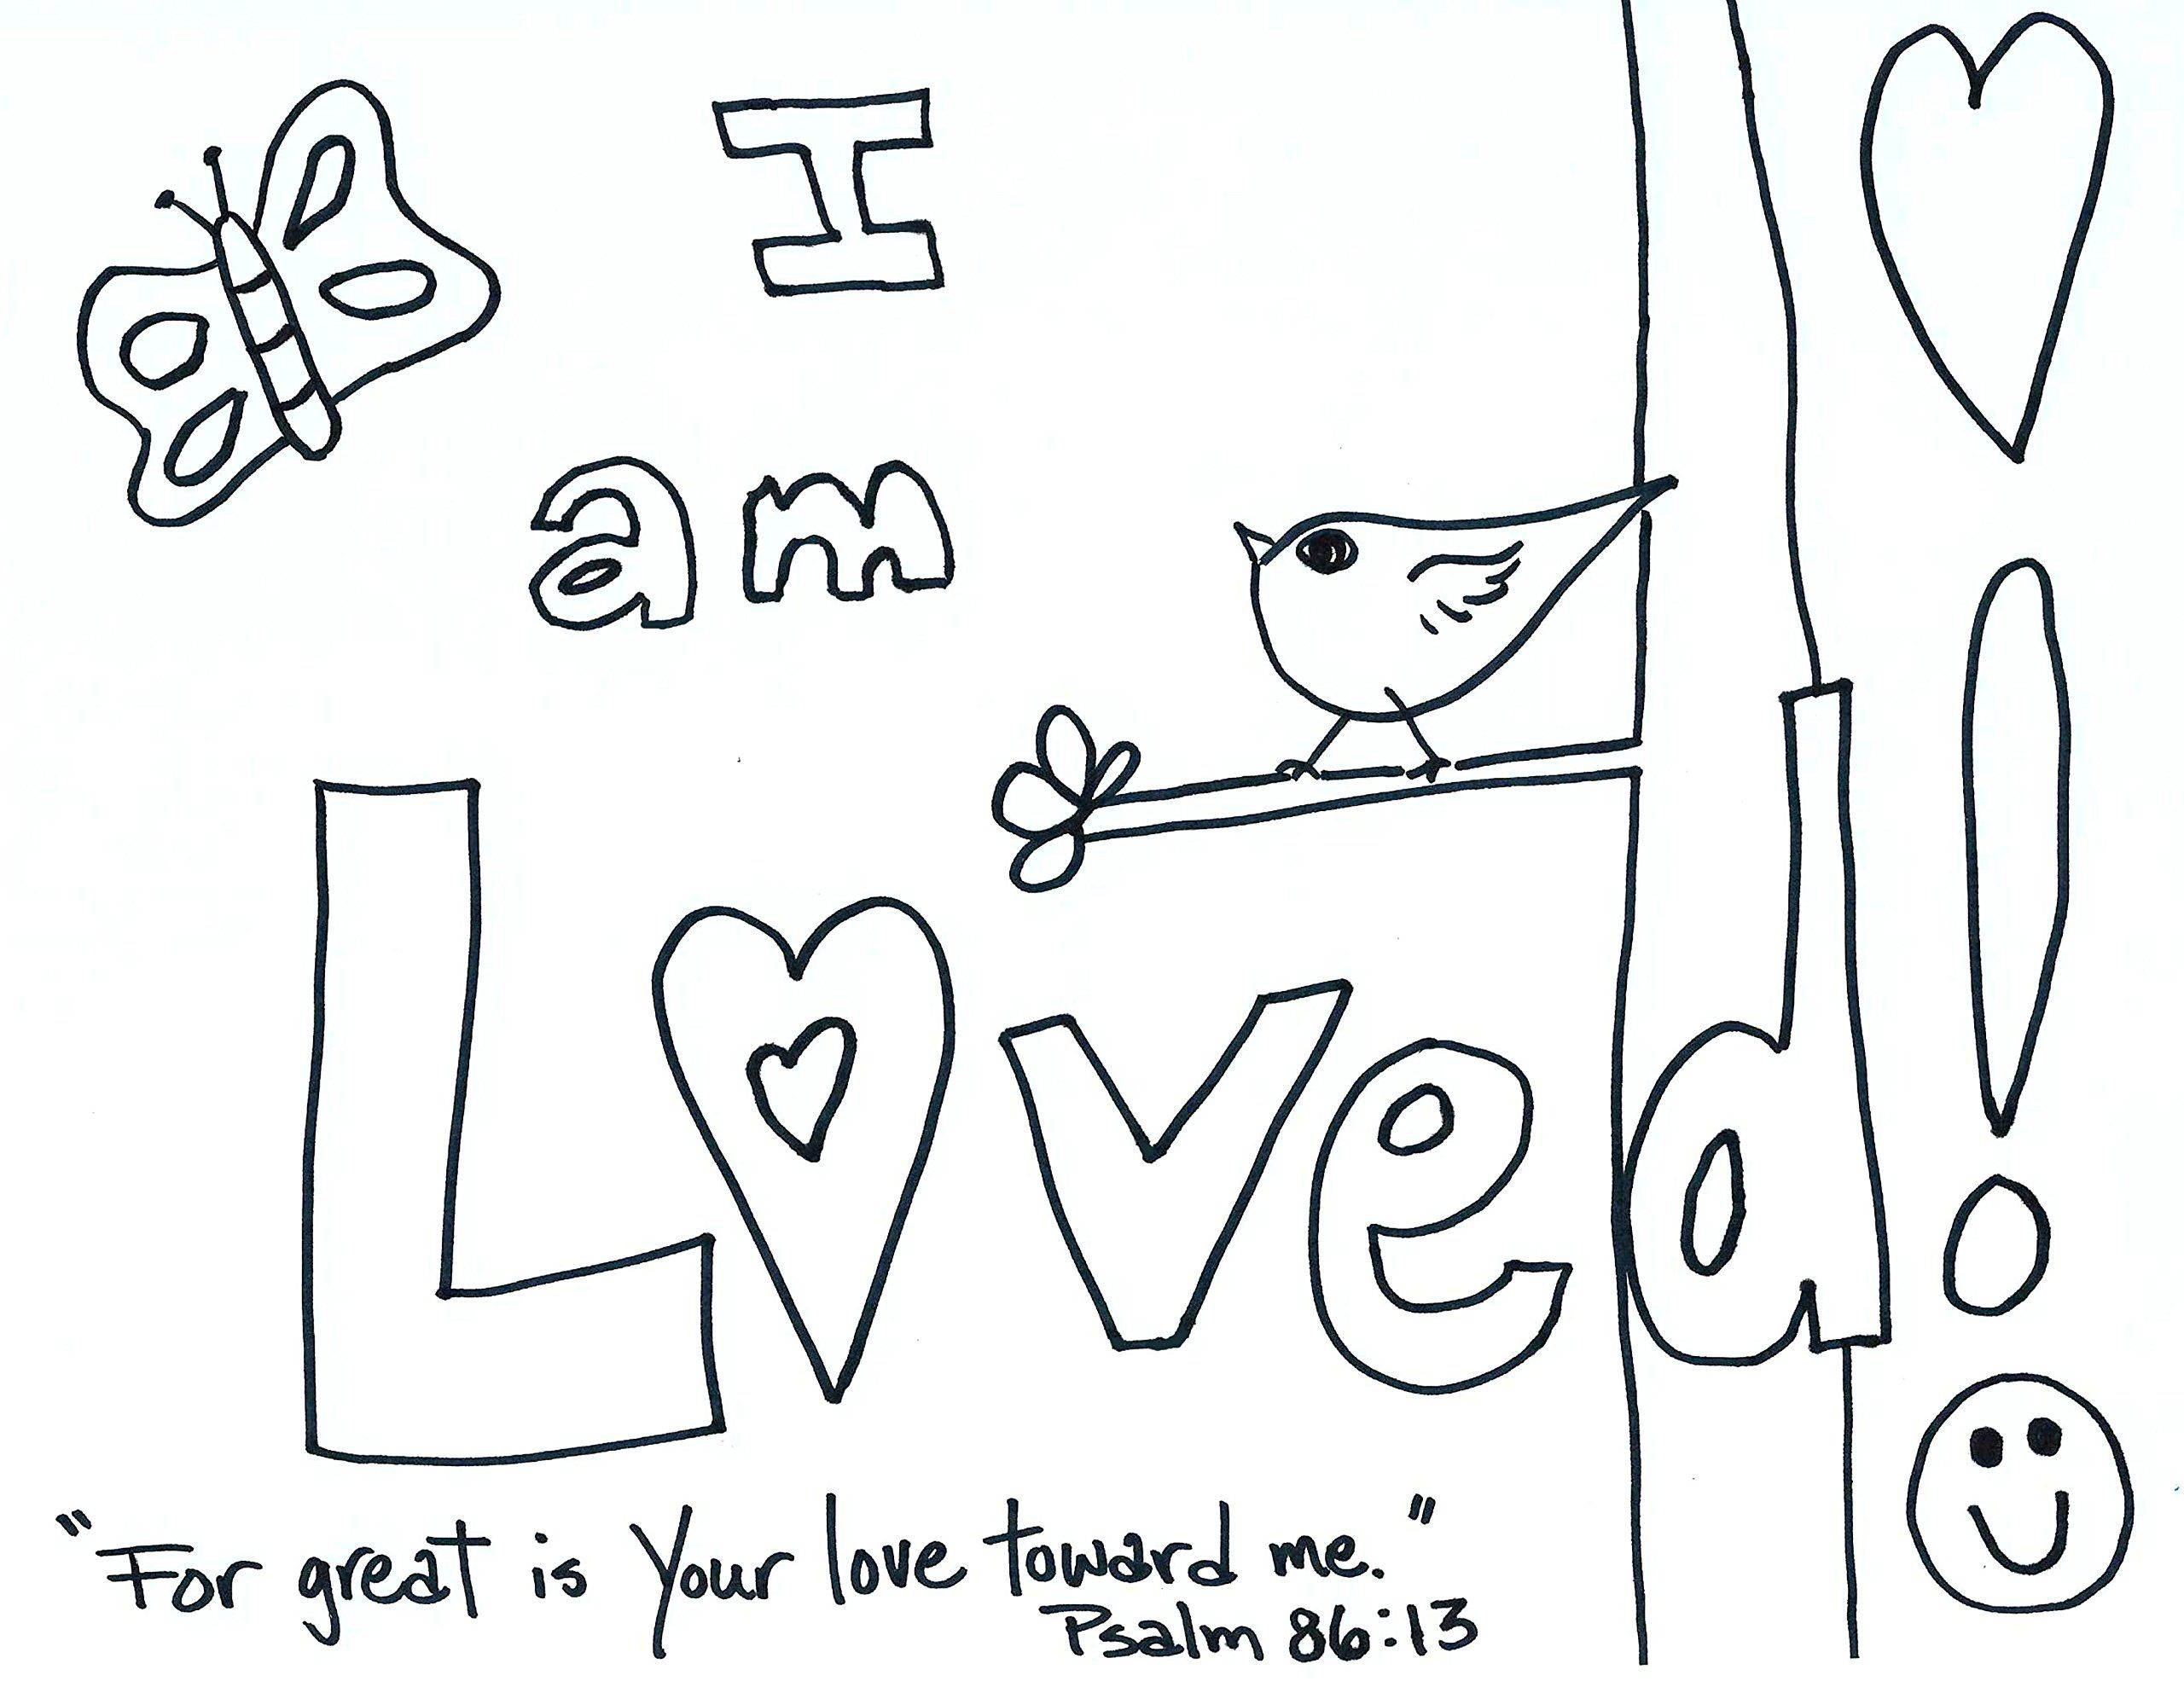 I am loved! coloring page download, adult or child coloring page I AM Thankful Coloring Pages Printable David Coloring Page I AM Strong Coloring Page